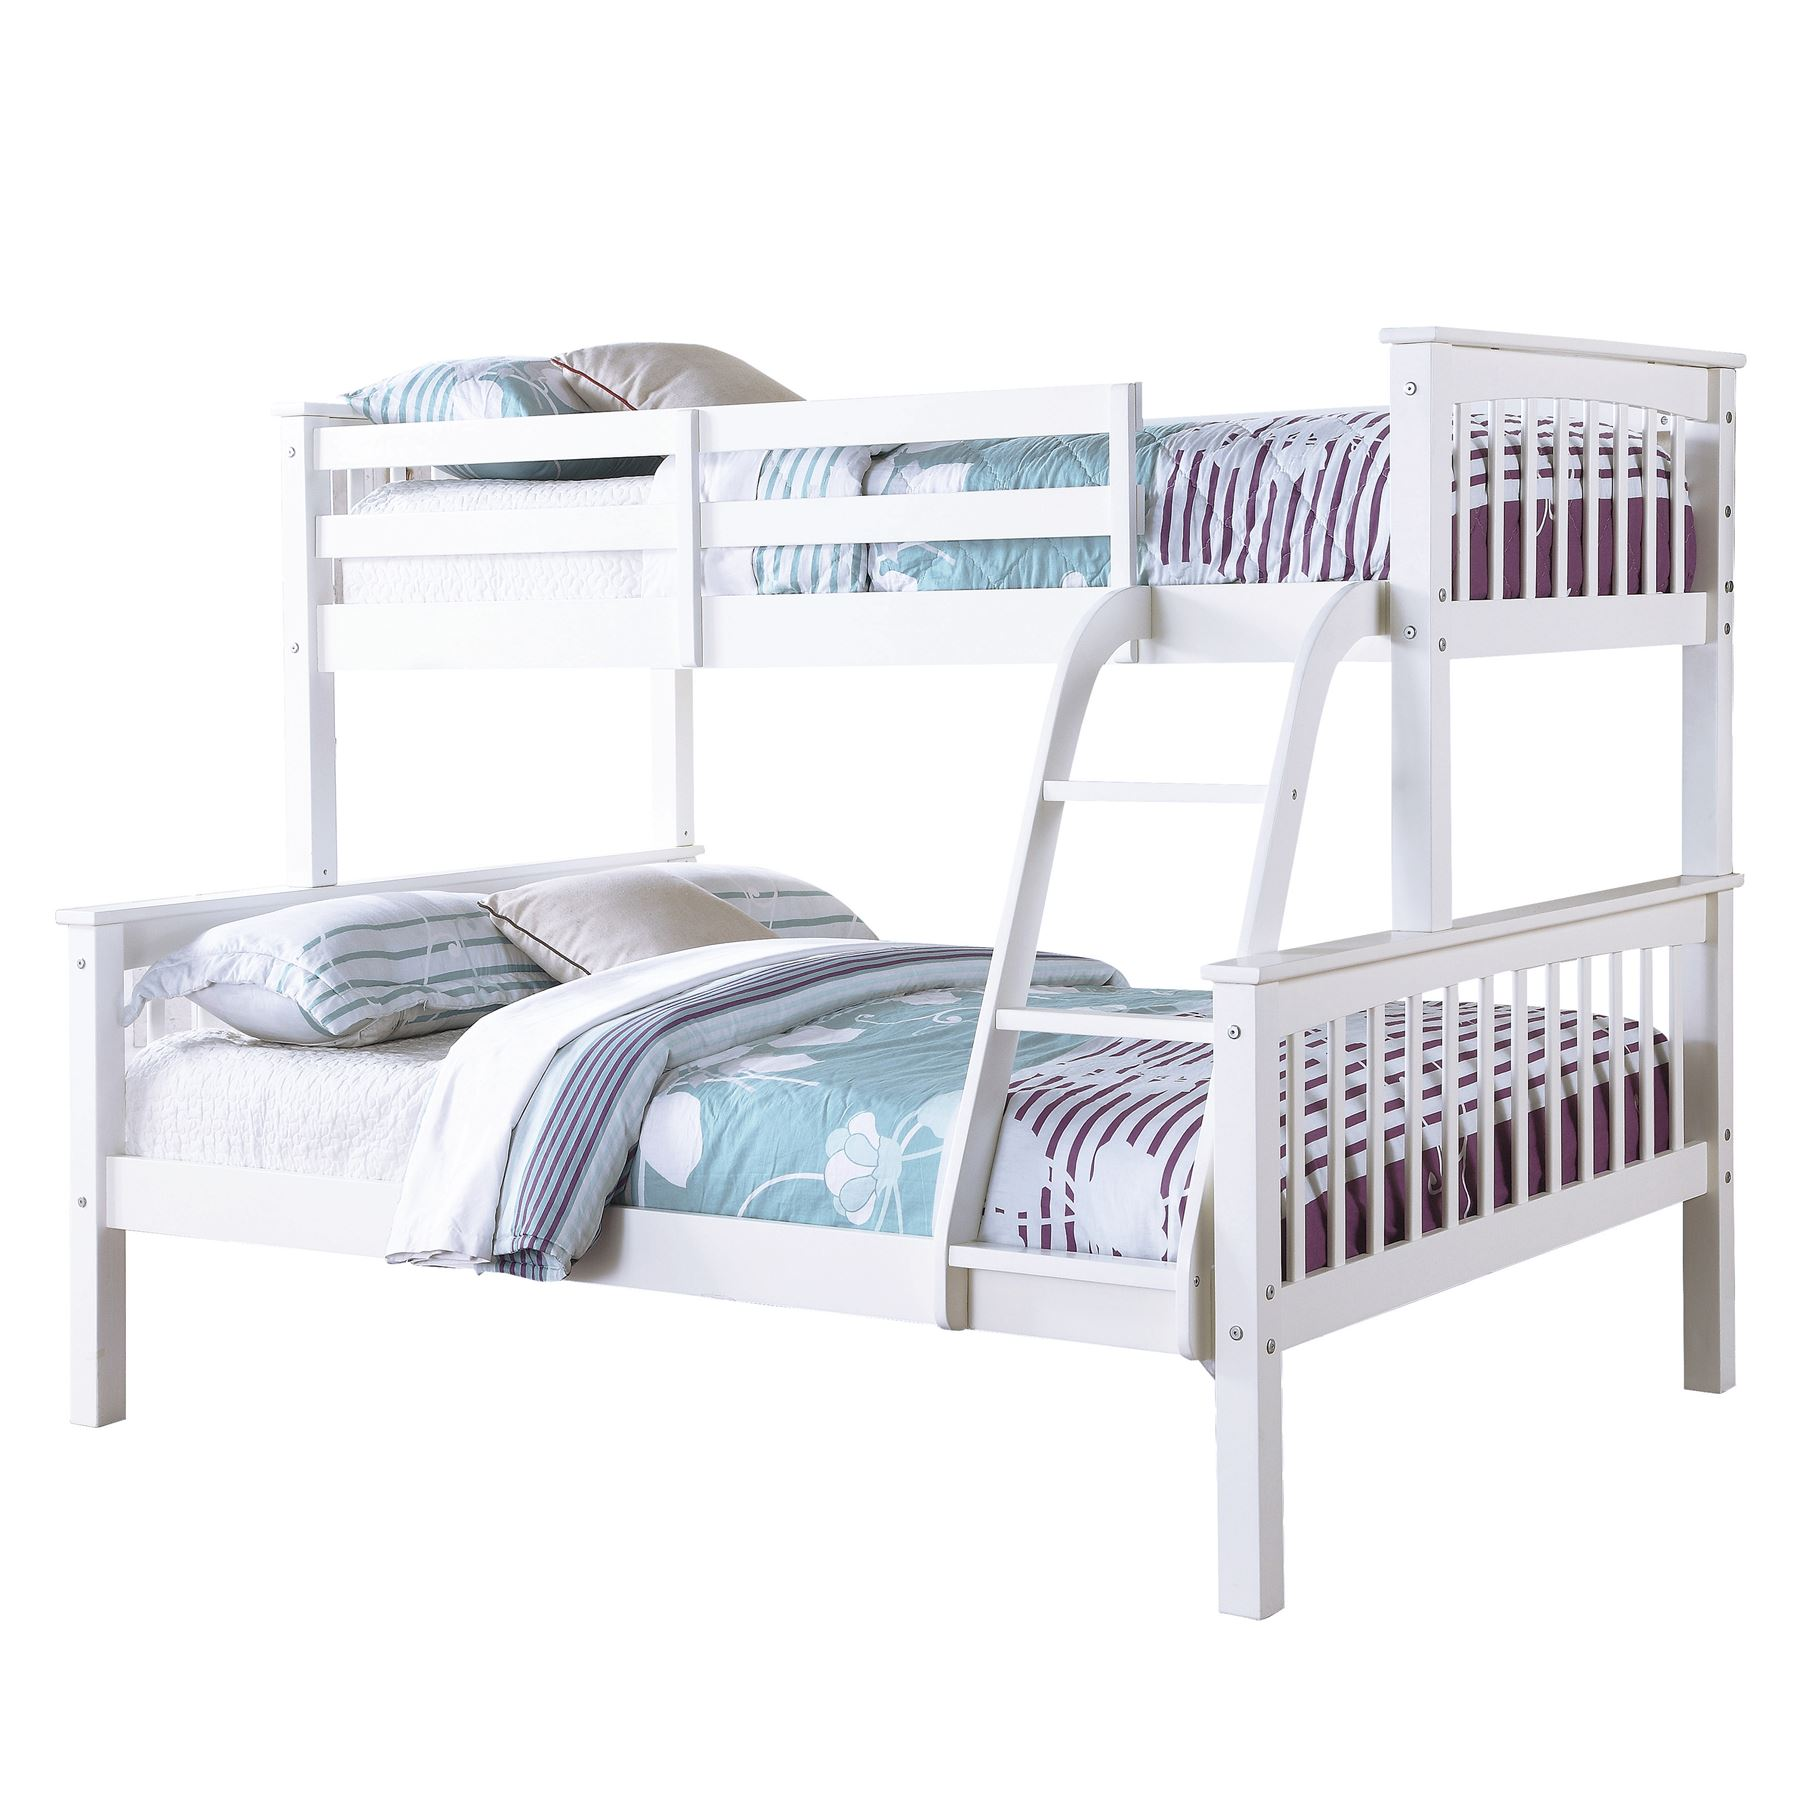 Novaro trio white bunk bed frames 3ft single 4ft6 double for Childrens single beds